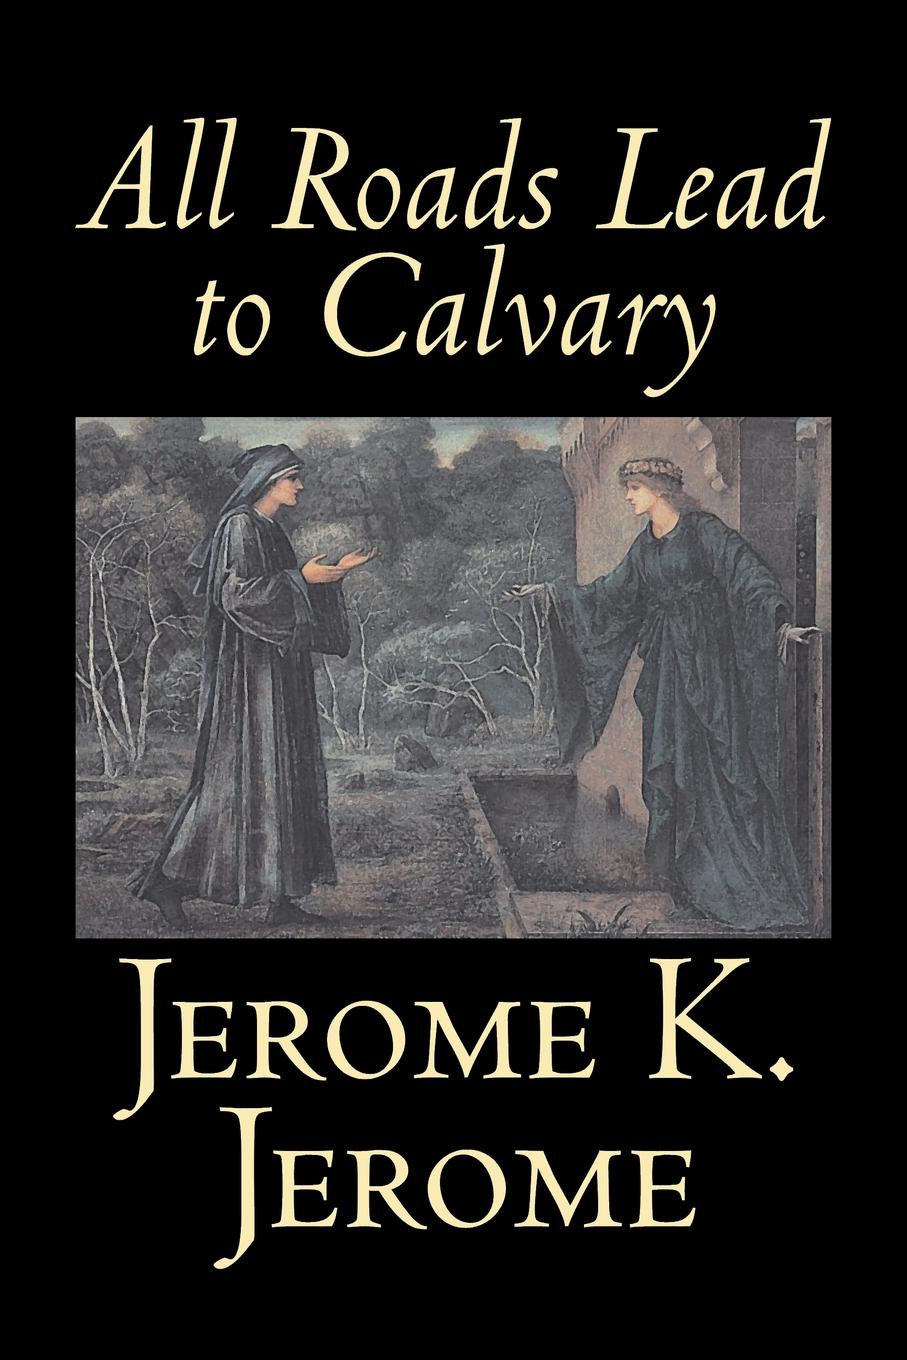 Jerome K. Jerome All Roads Lead to Calvary by Jerome K. Jerome, Fiction, Classics, Literary jerome jerome k three men in a boat a novel